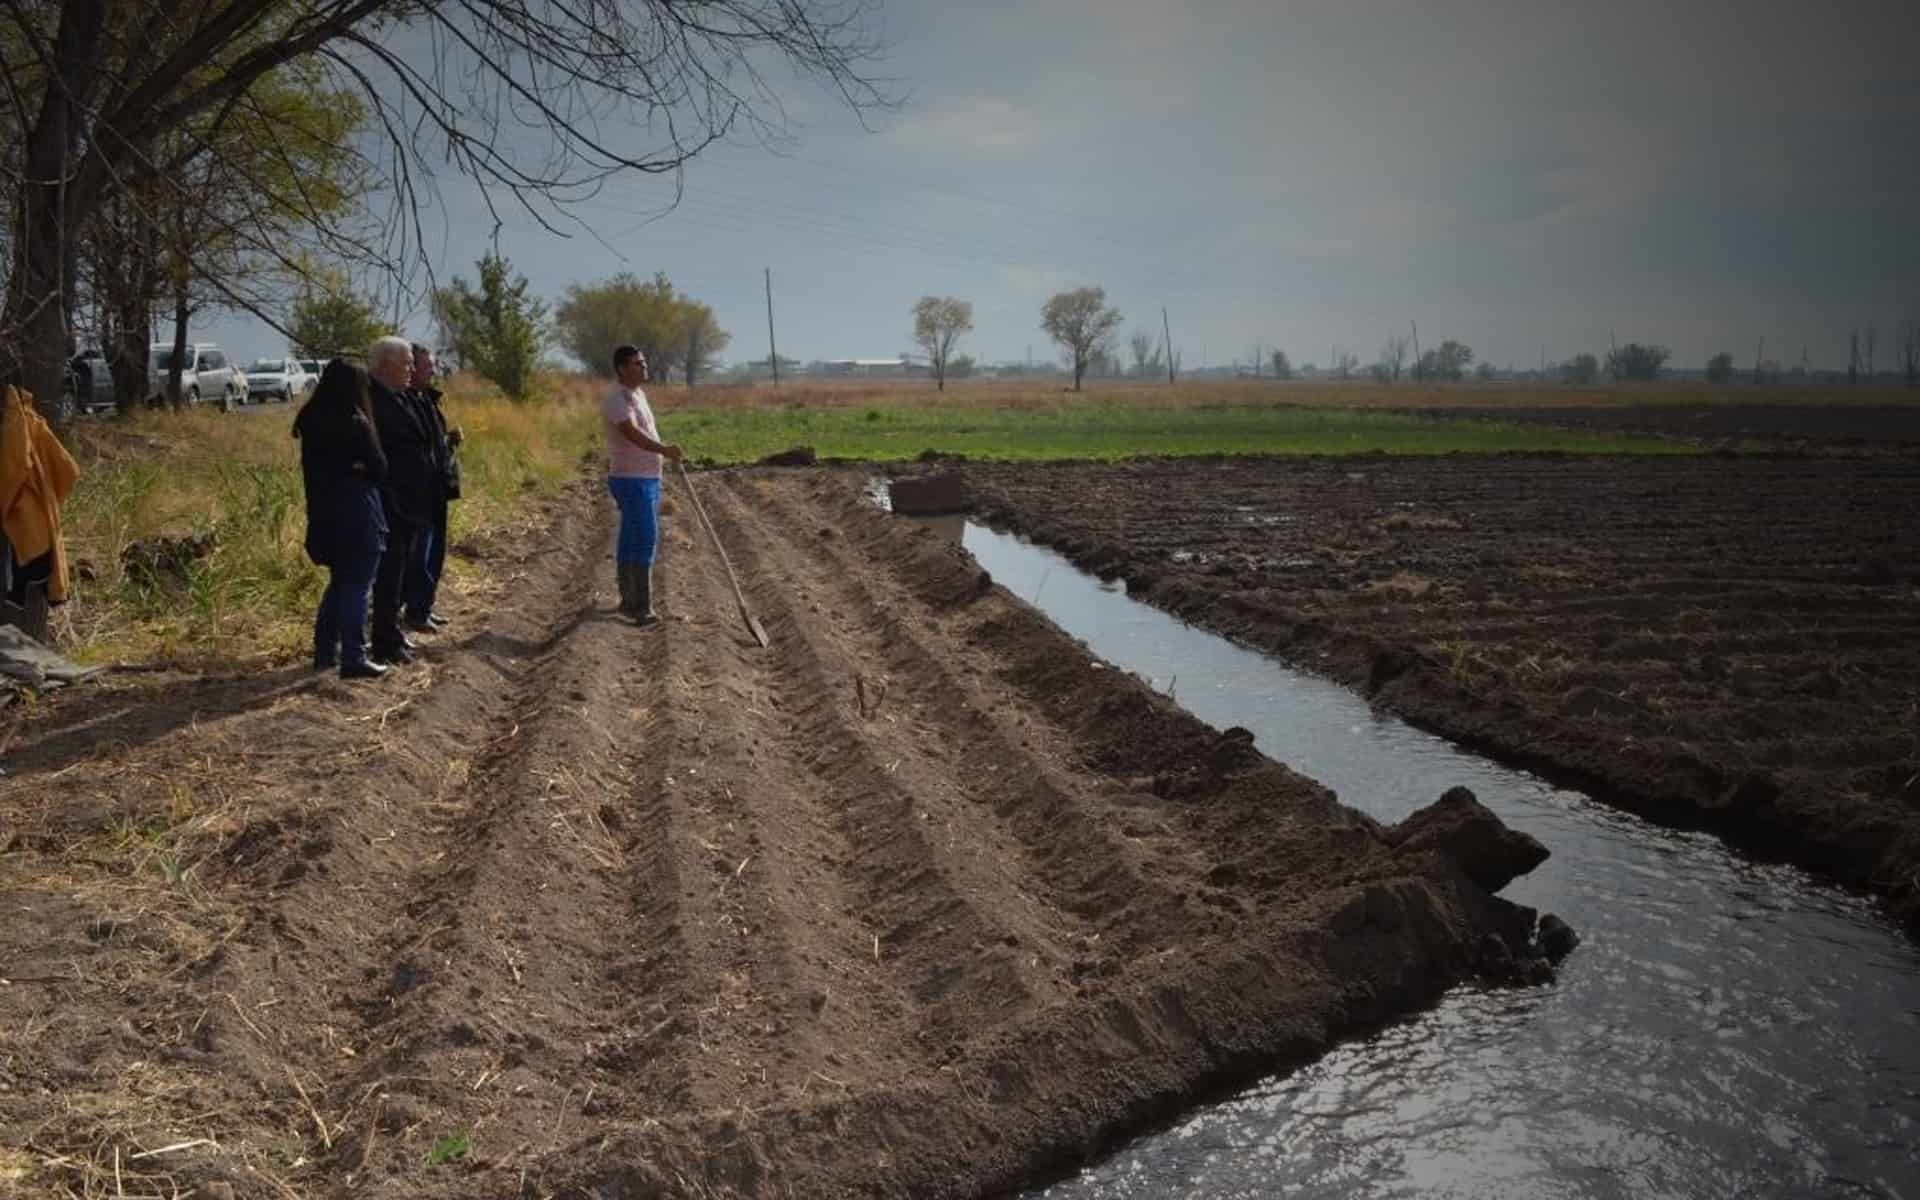 CONSERVING WATER IN ARMENIA